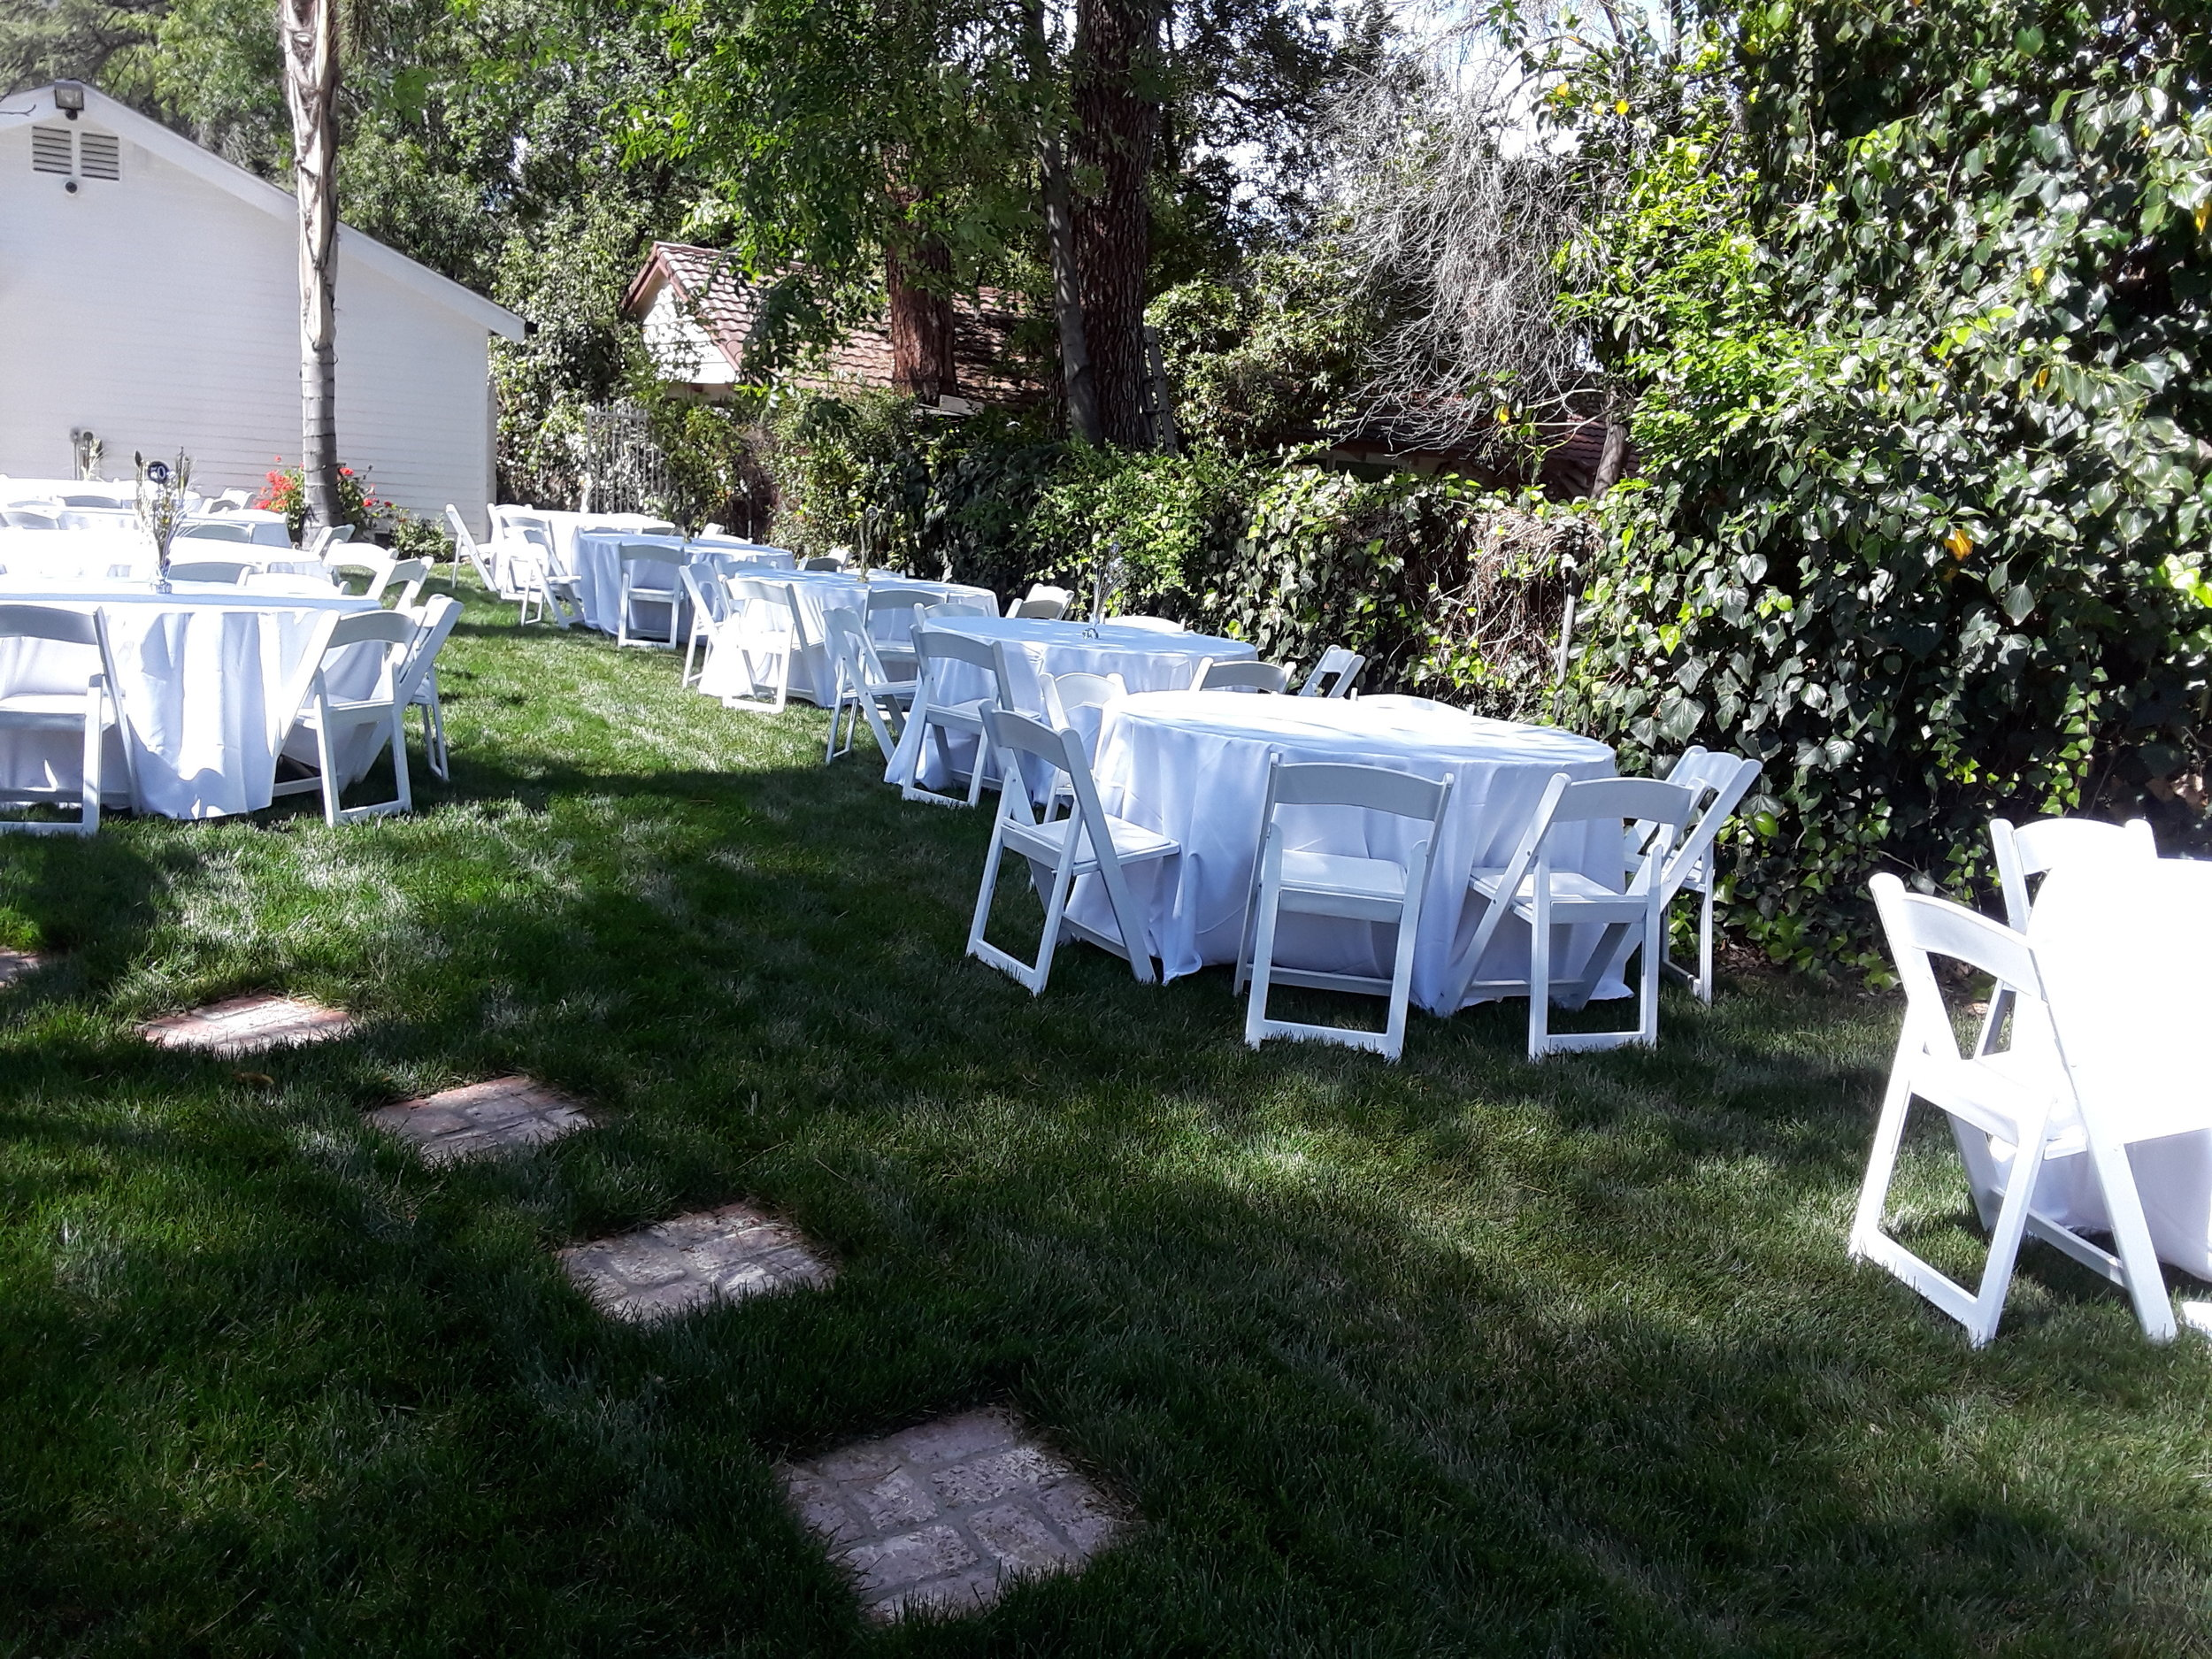 From birthday parties, back yard parties to weddings. Party Rental Creation near Westlake village covers all.